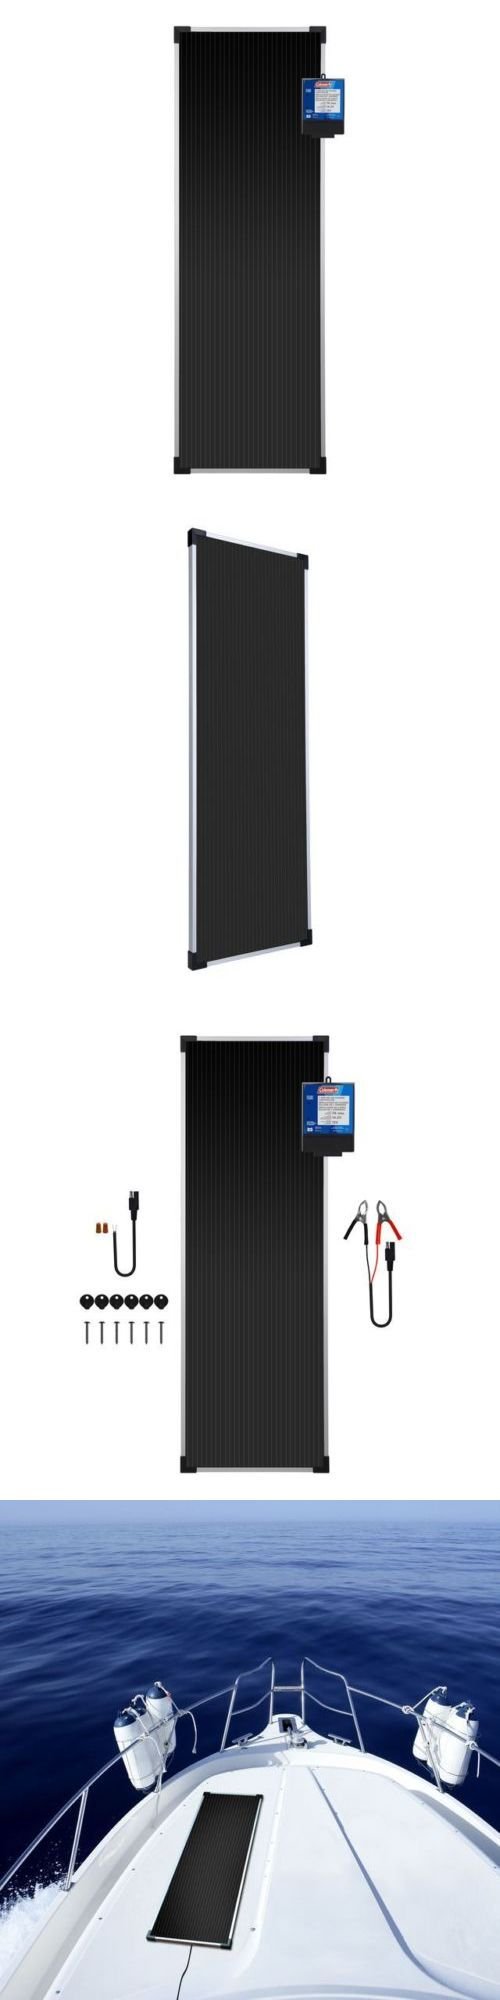 Solar Panels 41981: Sunforce Coleman 18 Watt 12 V Solar Panel Kit With 7 Amp Charge Controller 58033 -> BUY IT NOW ONLY: $69.95 on eBay!